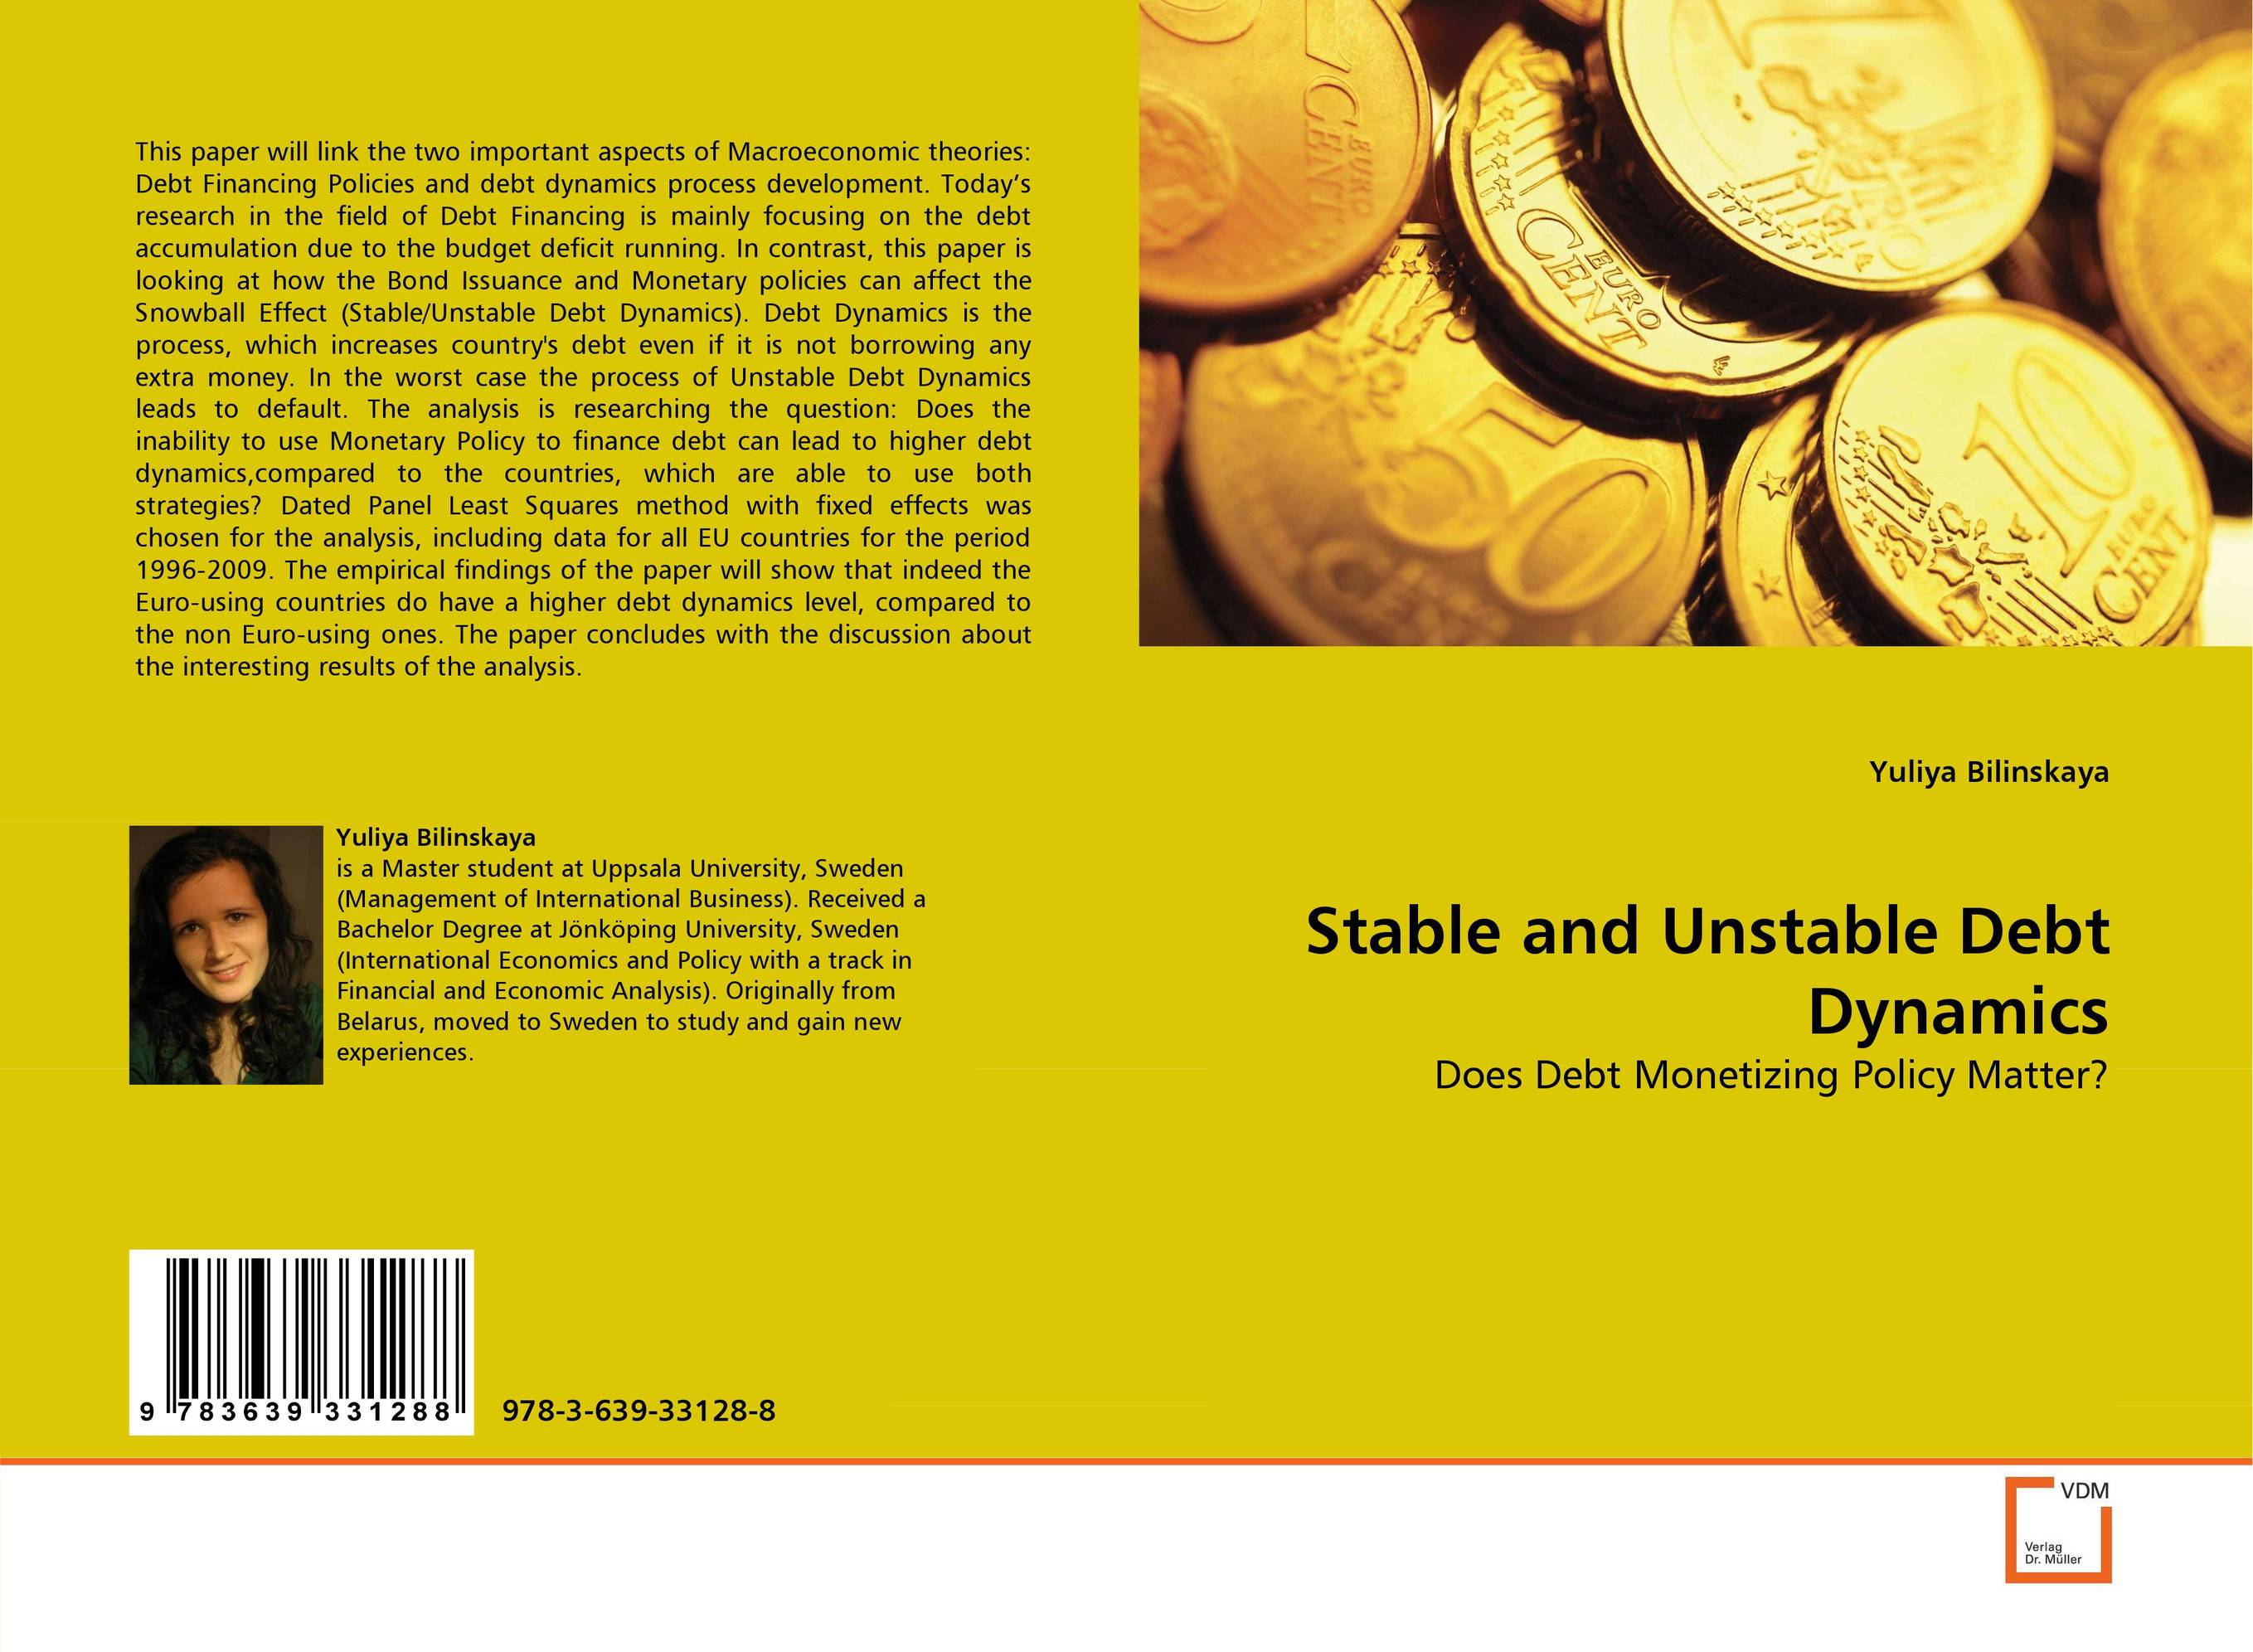 Stable and Unstable Debt Dynamics